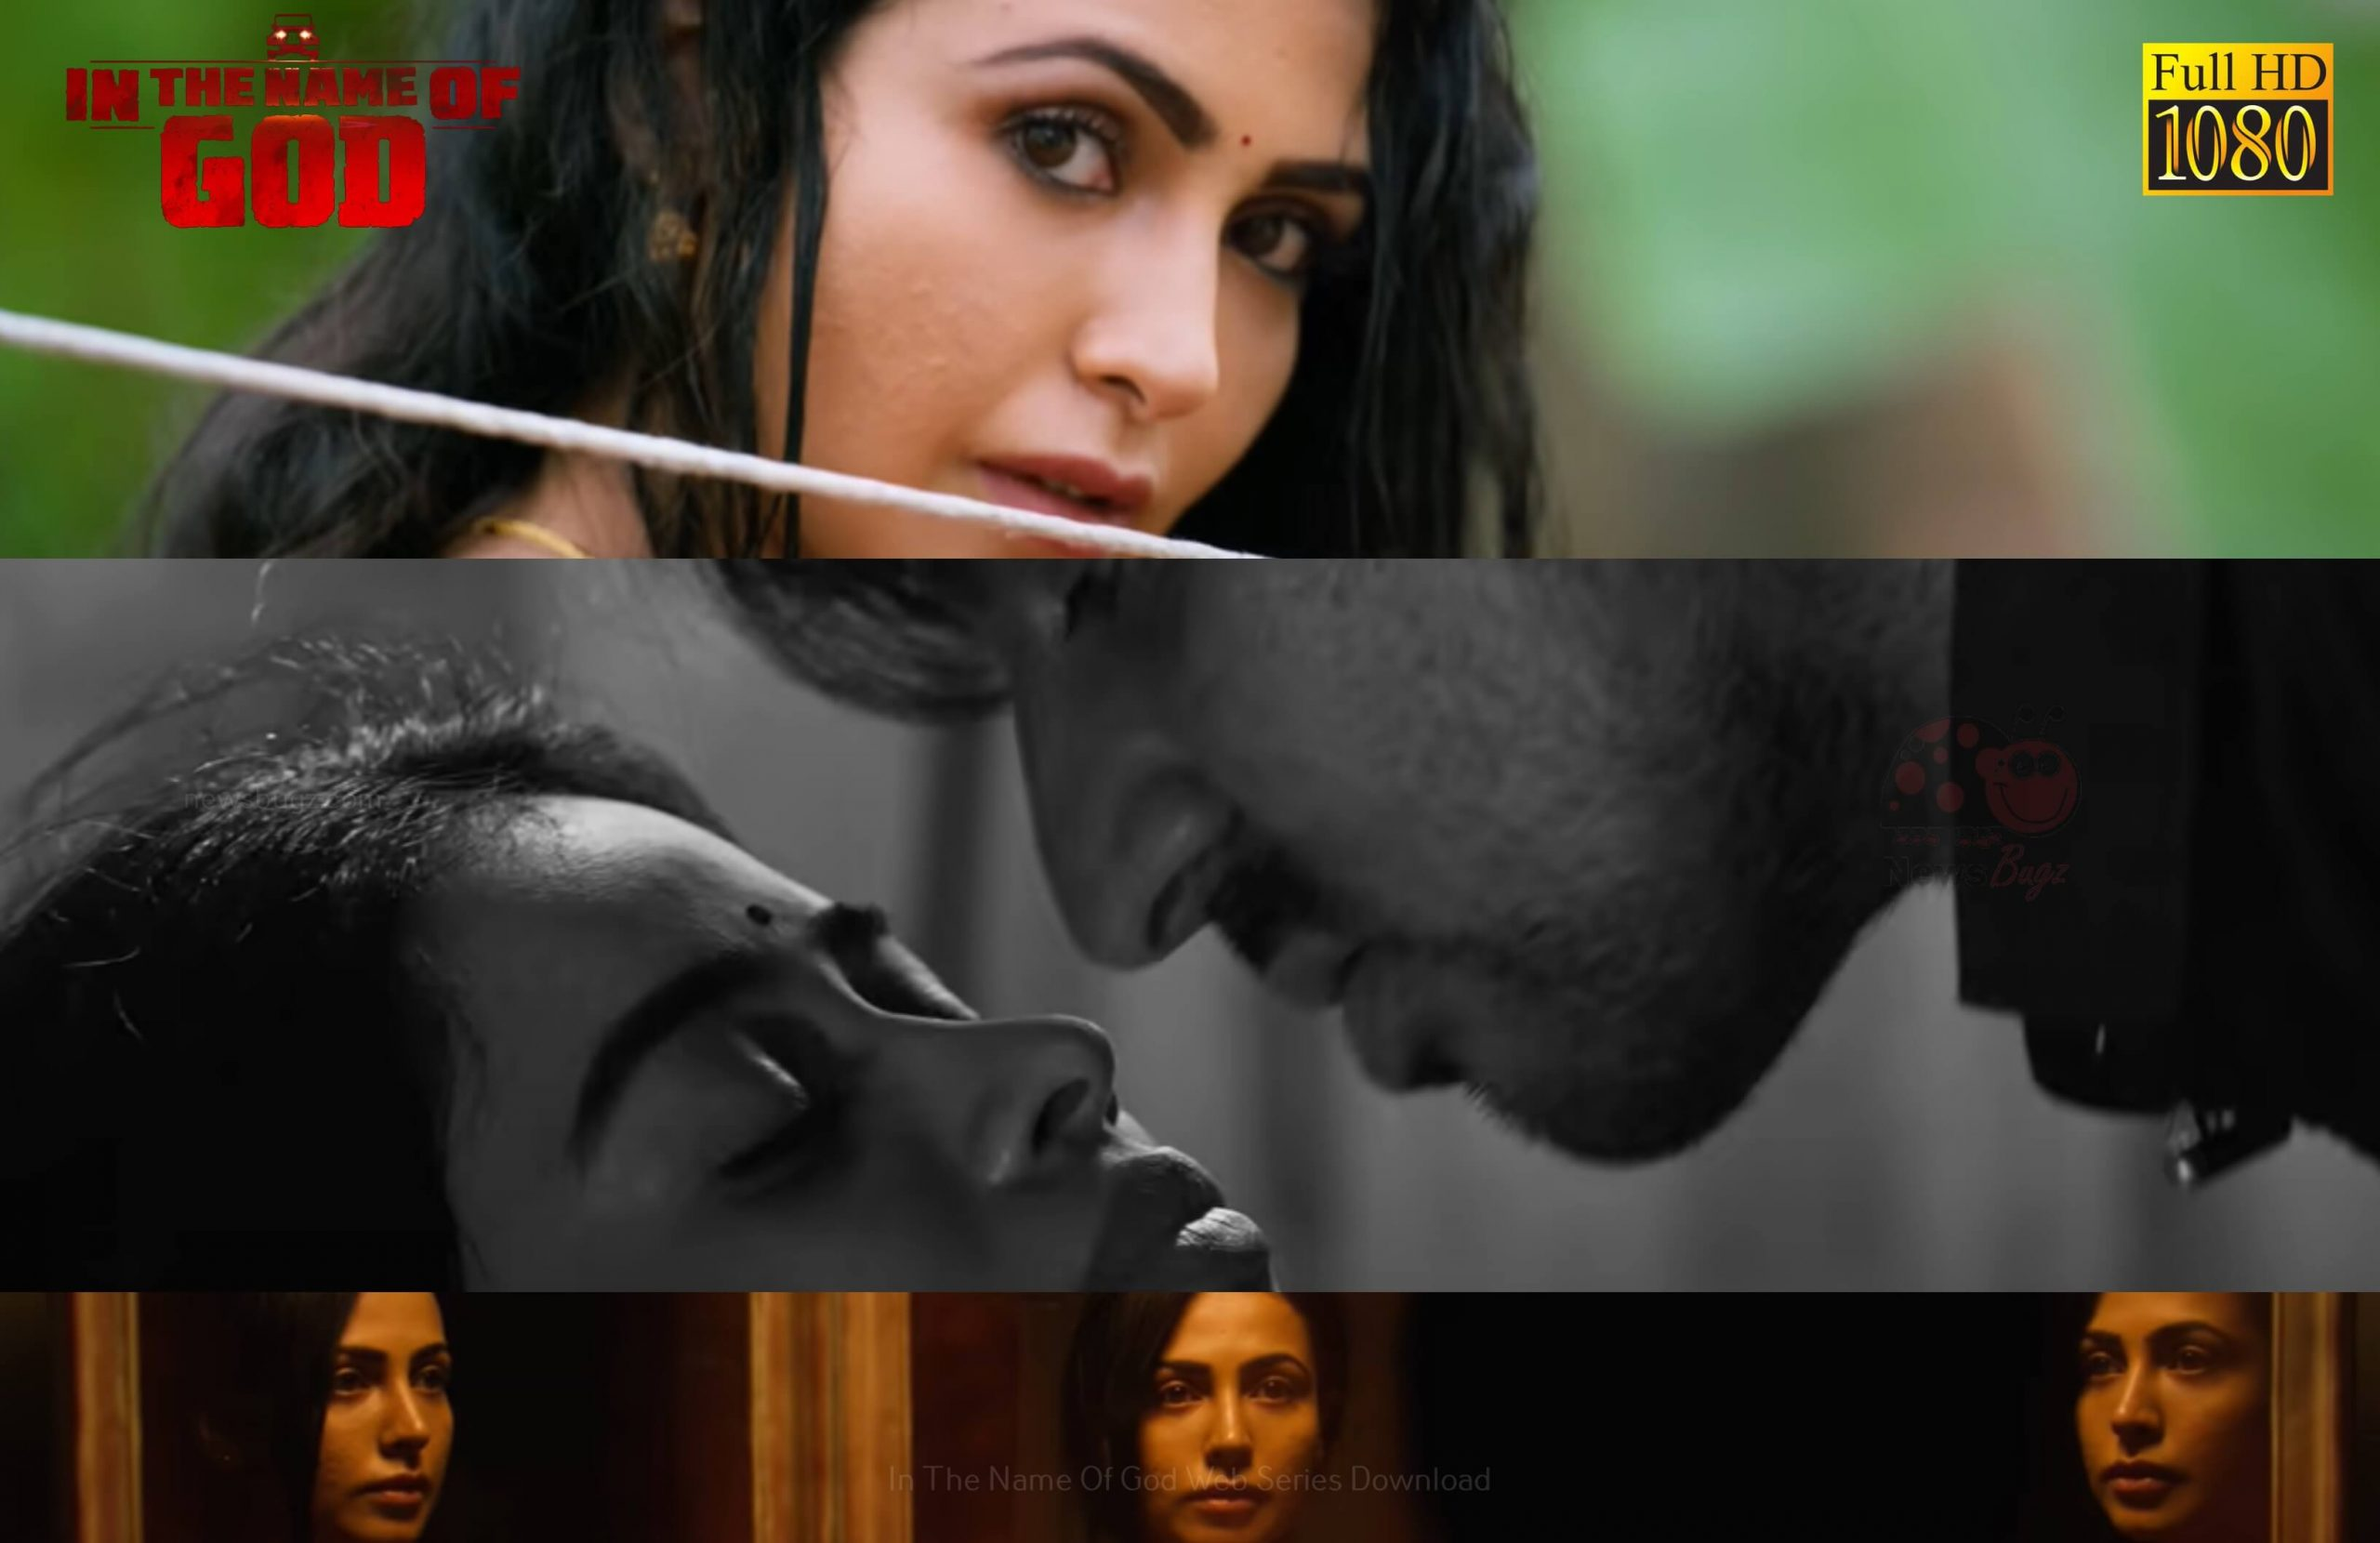 In The Name Of God Web Series download